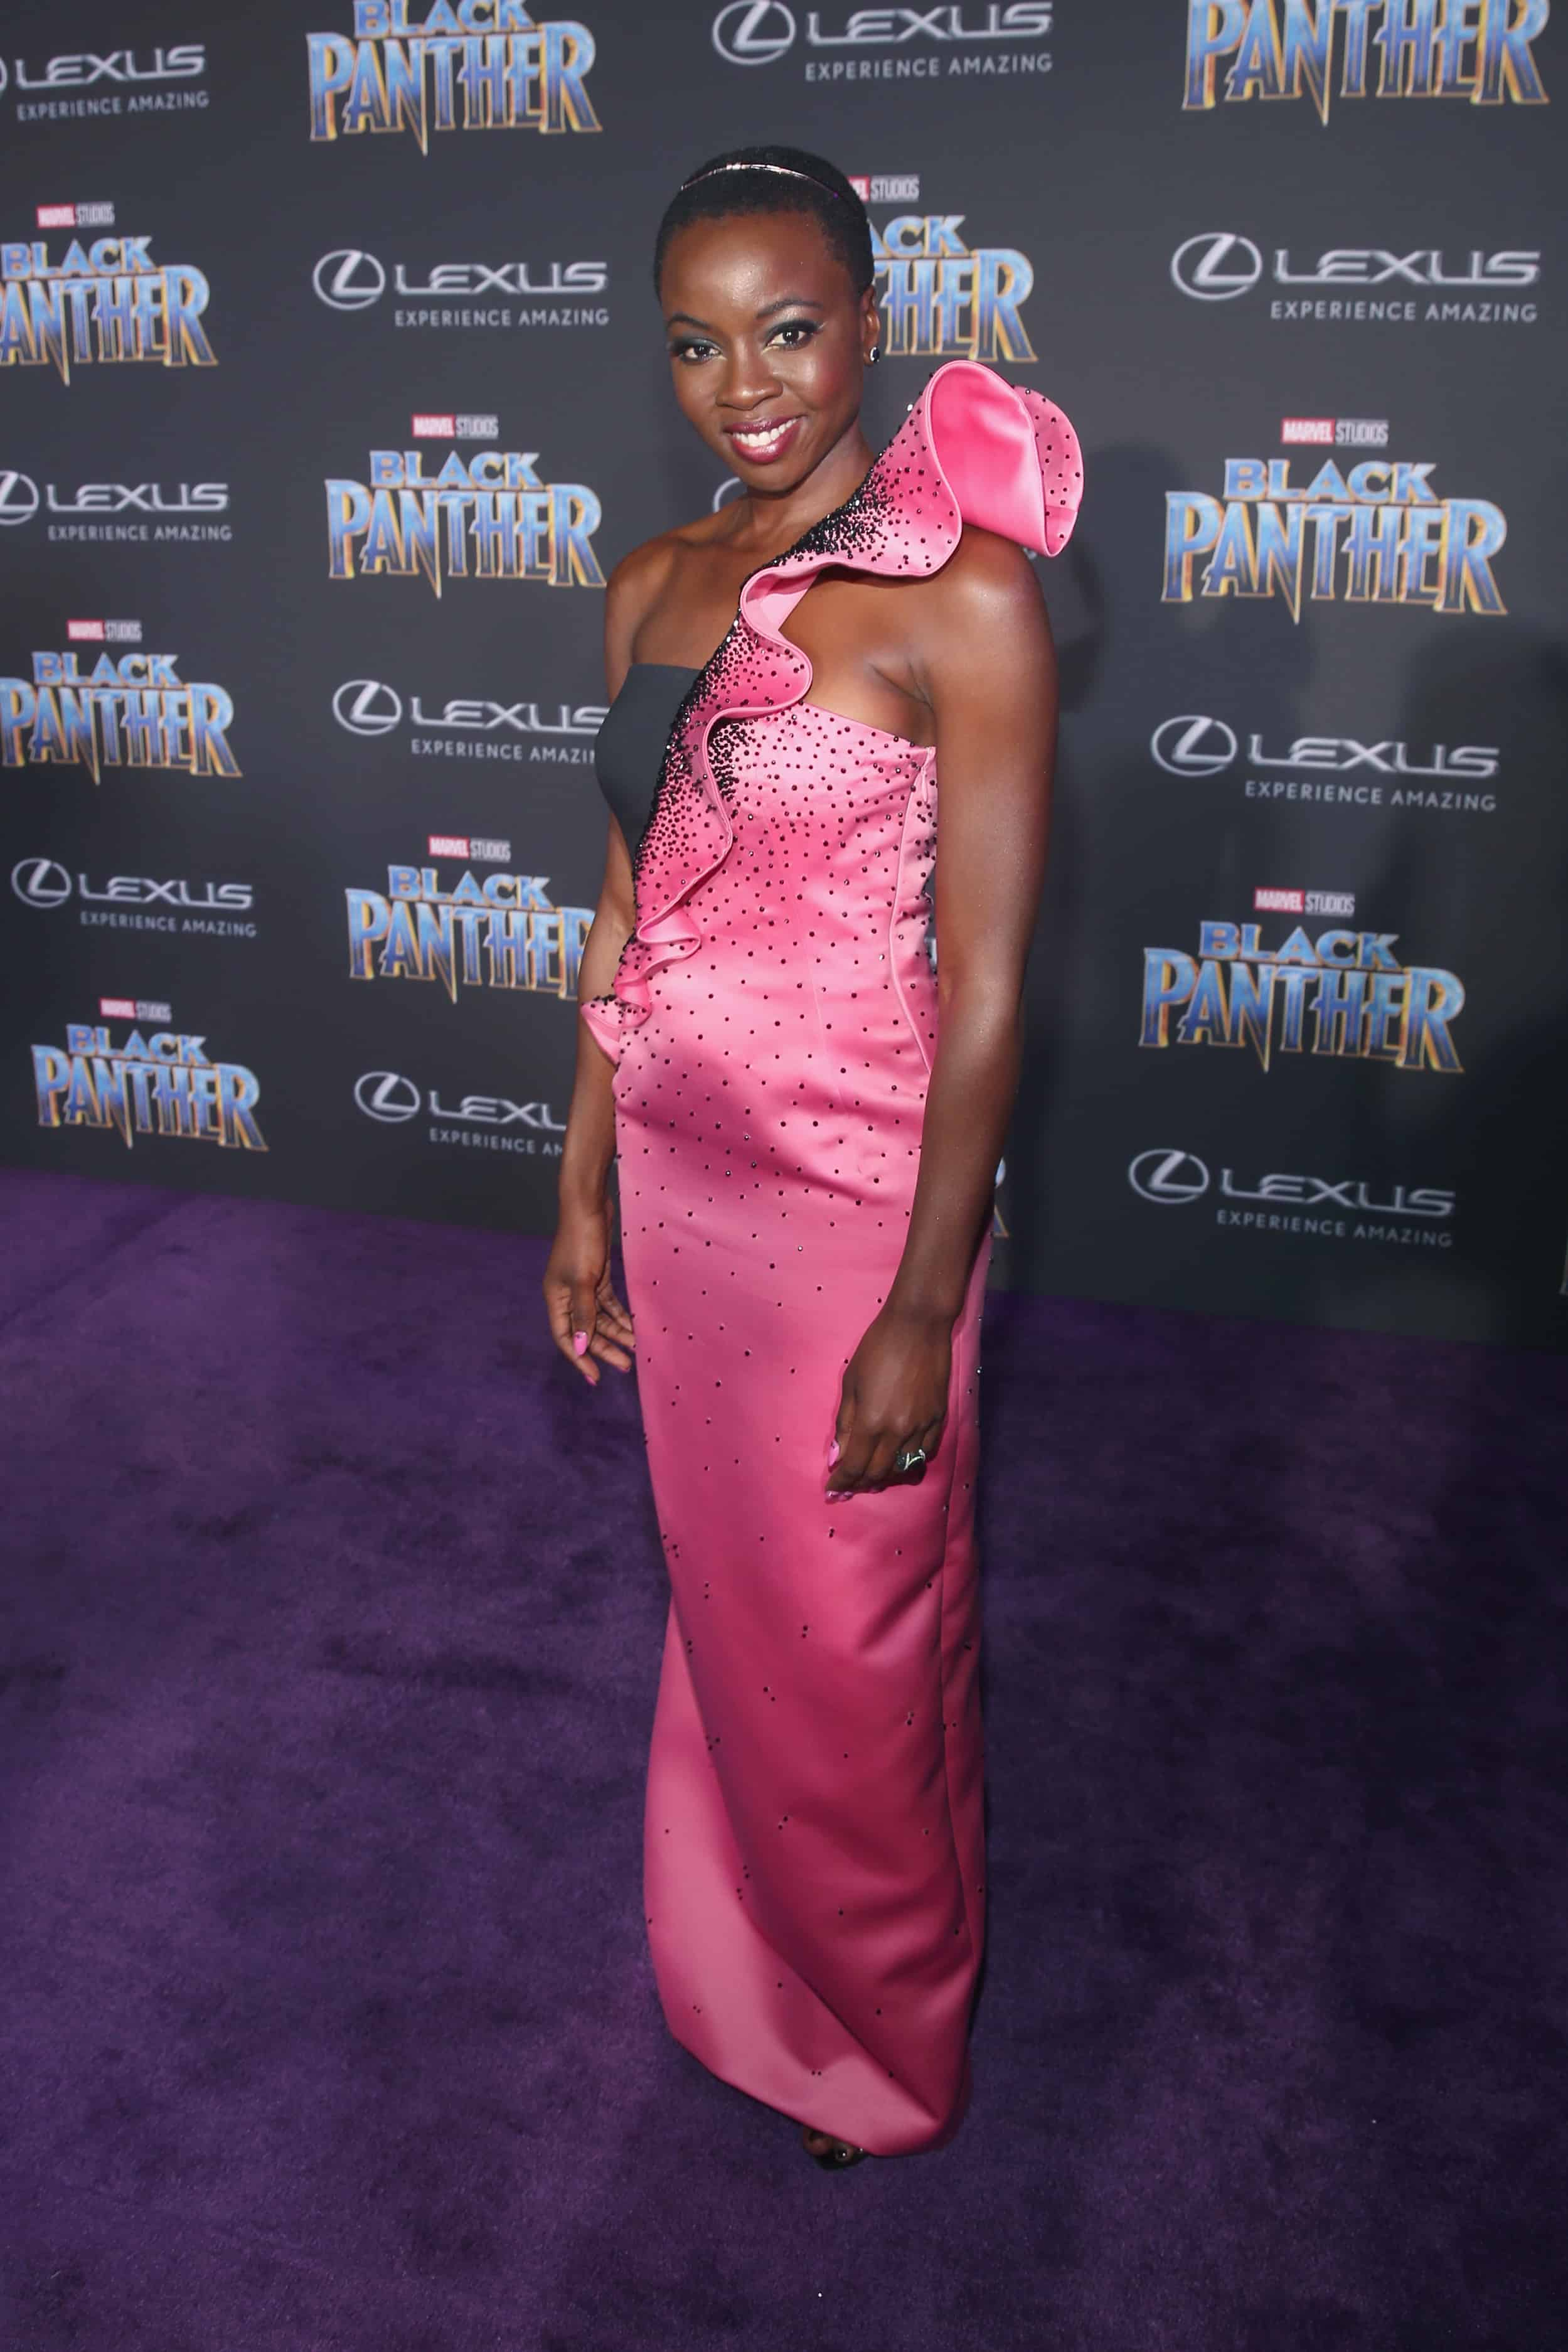 Fun On The Black Panther Red Carpet Blackpantherevent 4